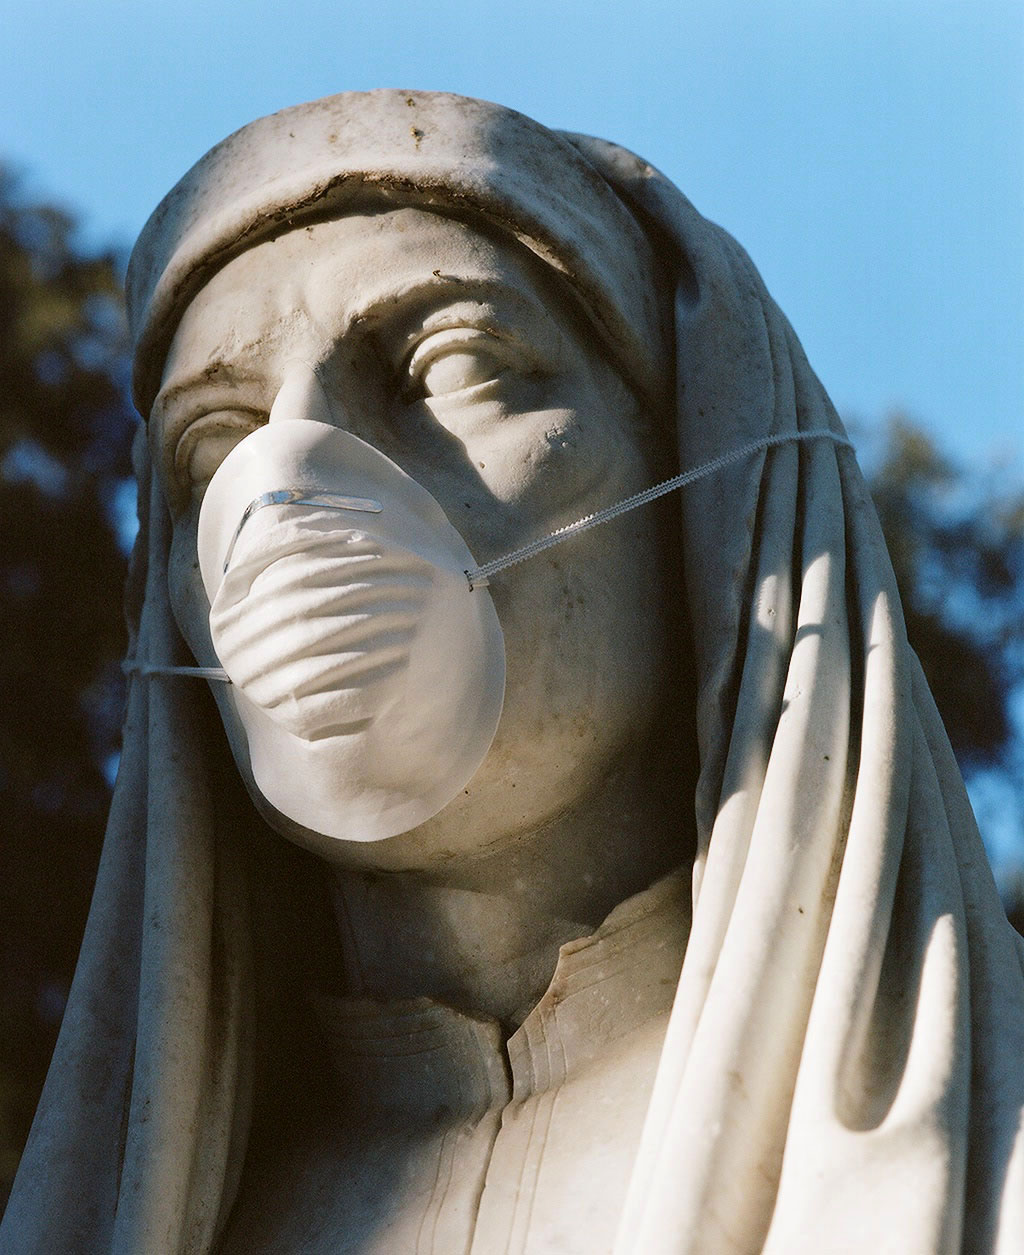 Bust of painter Giotto (1267-1337) at Villa Borghese gardens, Rome. Photo © Federico Pestilli.